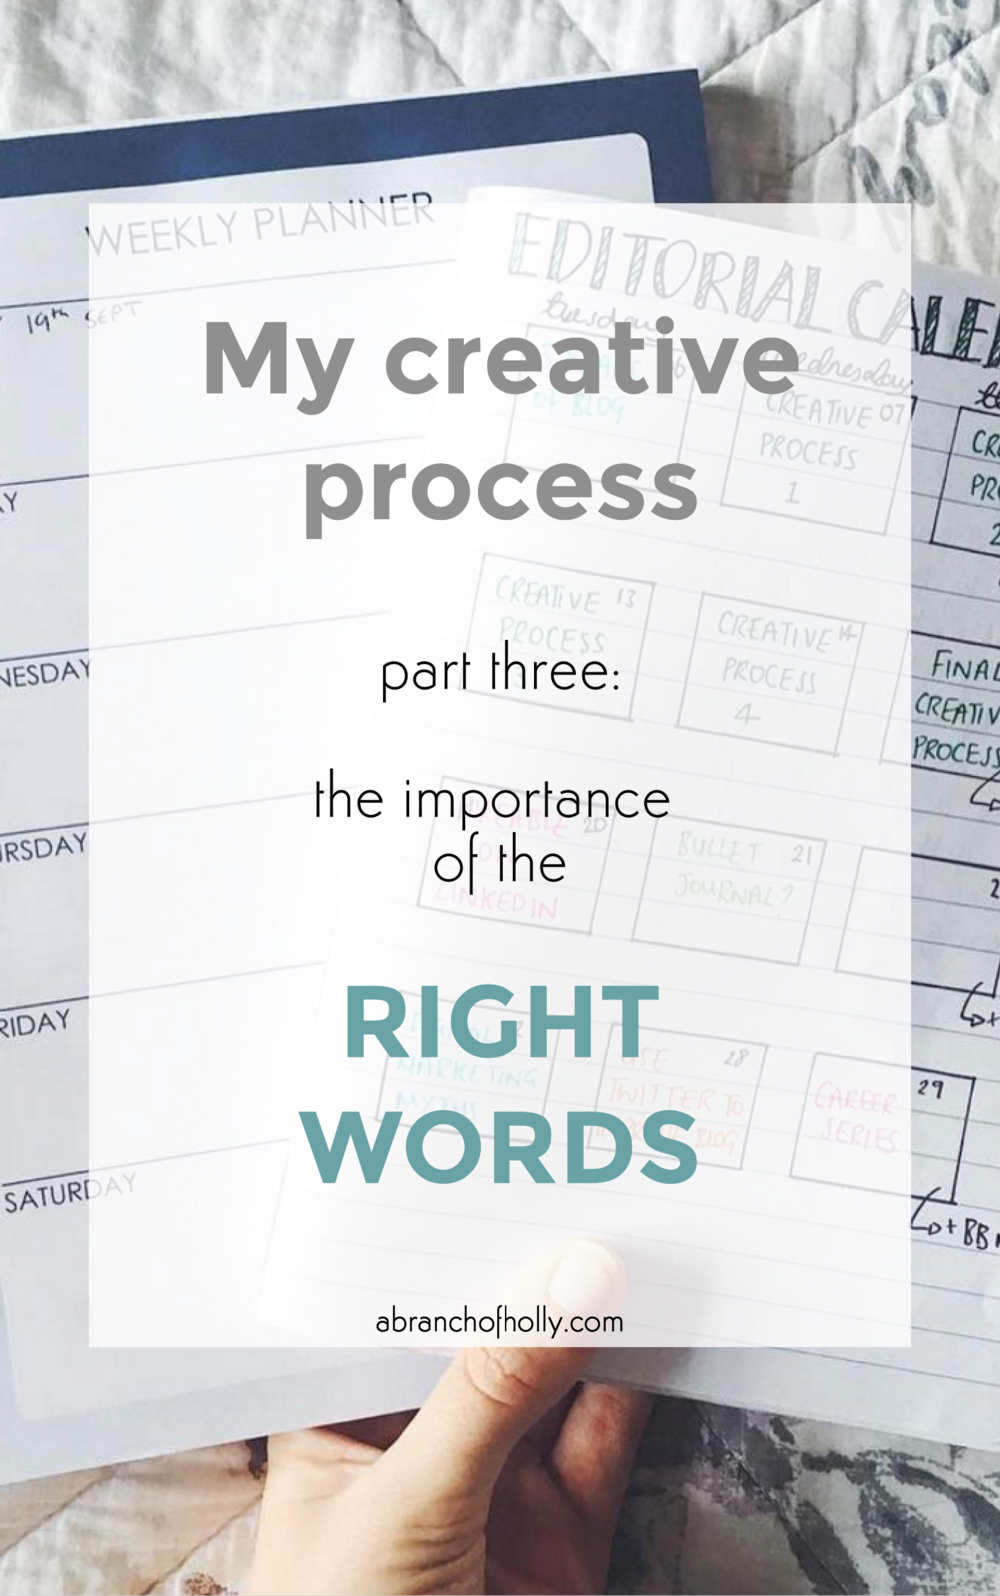 my creative process part three: the importance of the right words